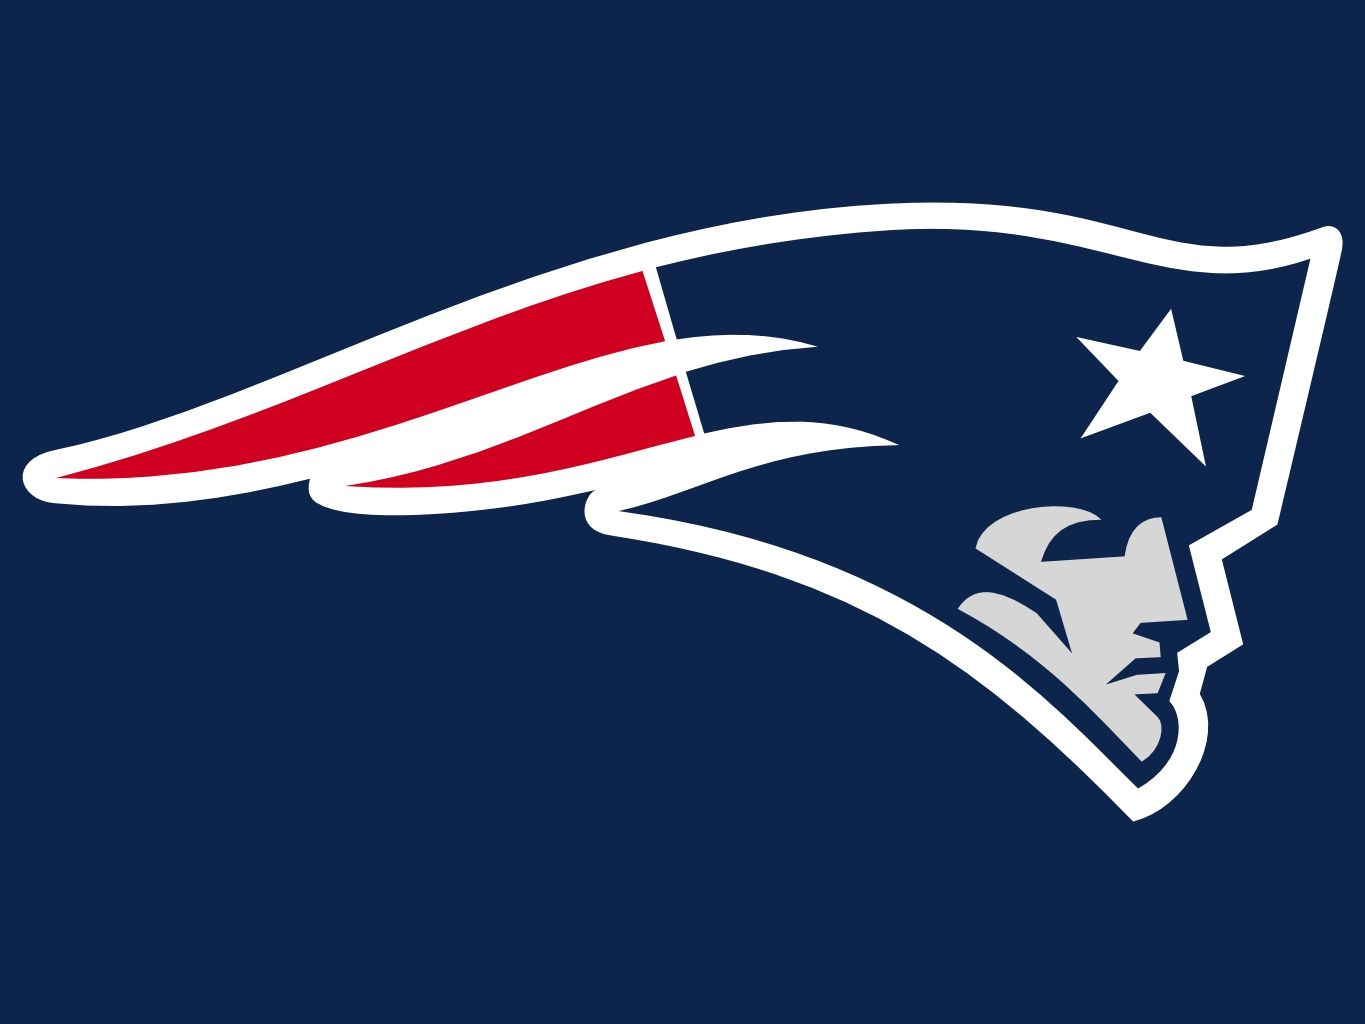 Iwallpaper Wallpapers For All Your Mobile Devices R Iwallpaper Nfl New England Patriots New England Patriots Football New England Patriots Logo